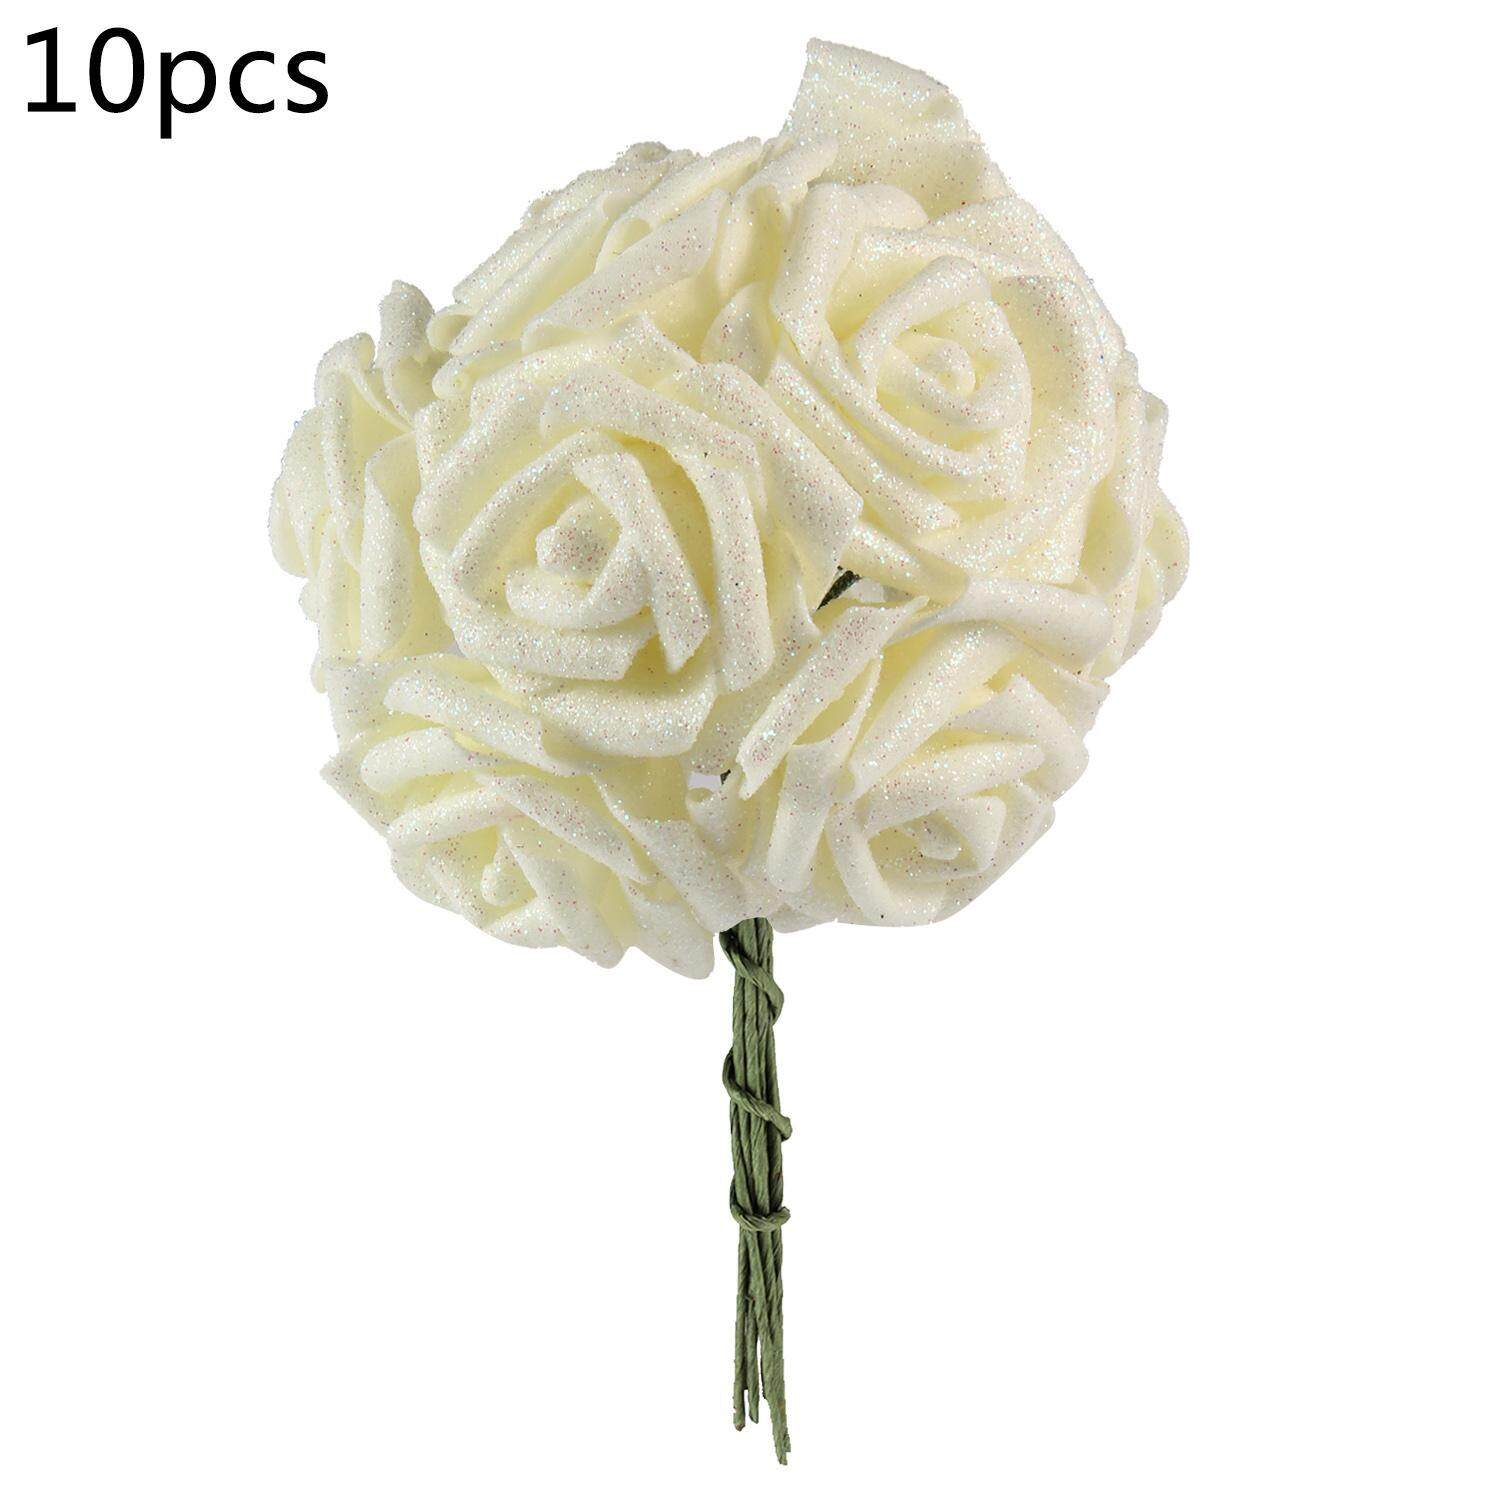 goges Wedding Bridal Bouquet Artificial Flower, Silk Roses Bridesmaid Bouquet Fake Flower For Children, Kids, Wedding, Party, Church (10 Pack) White